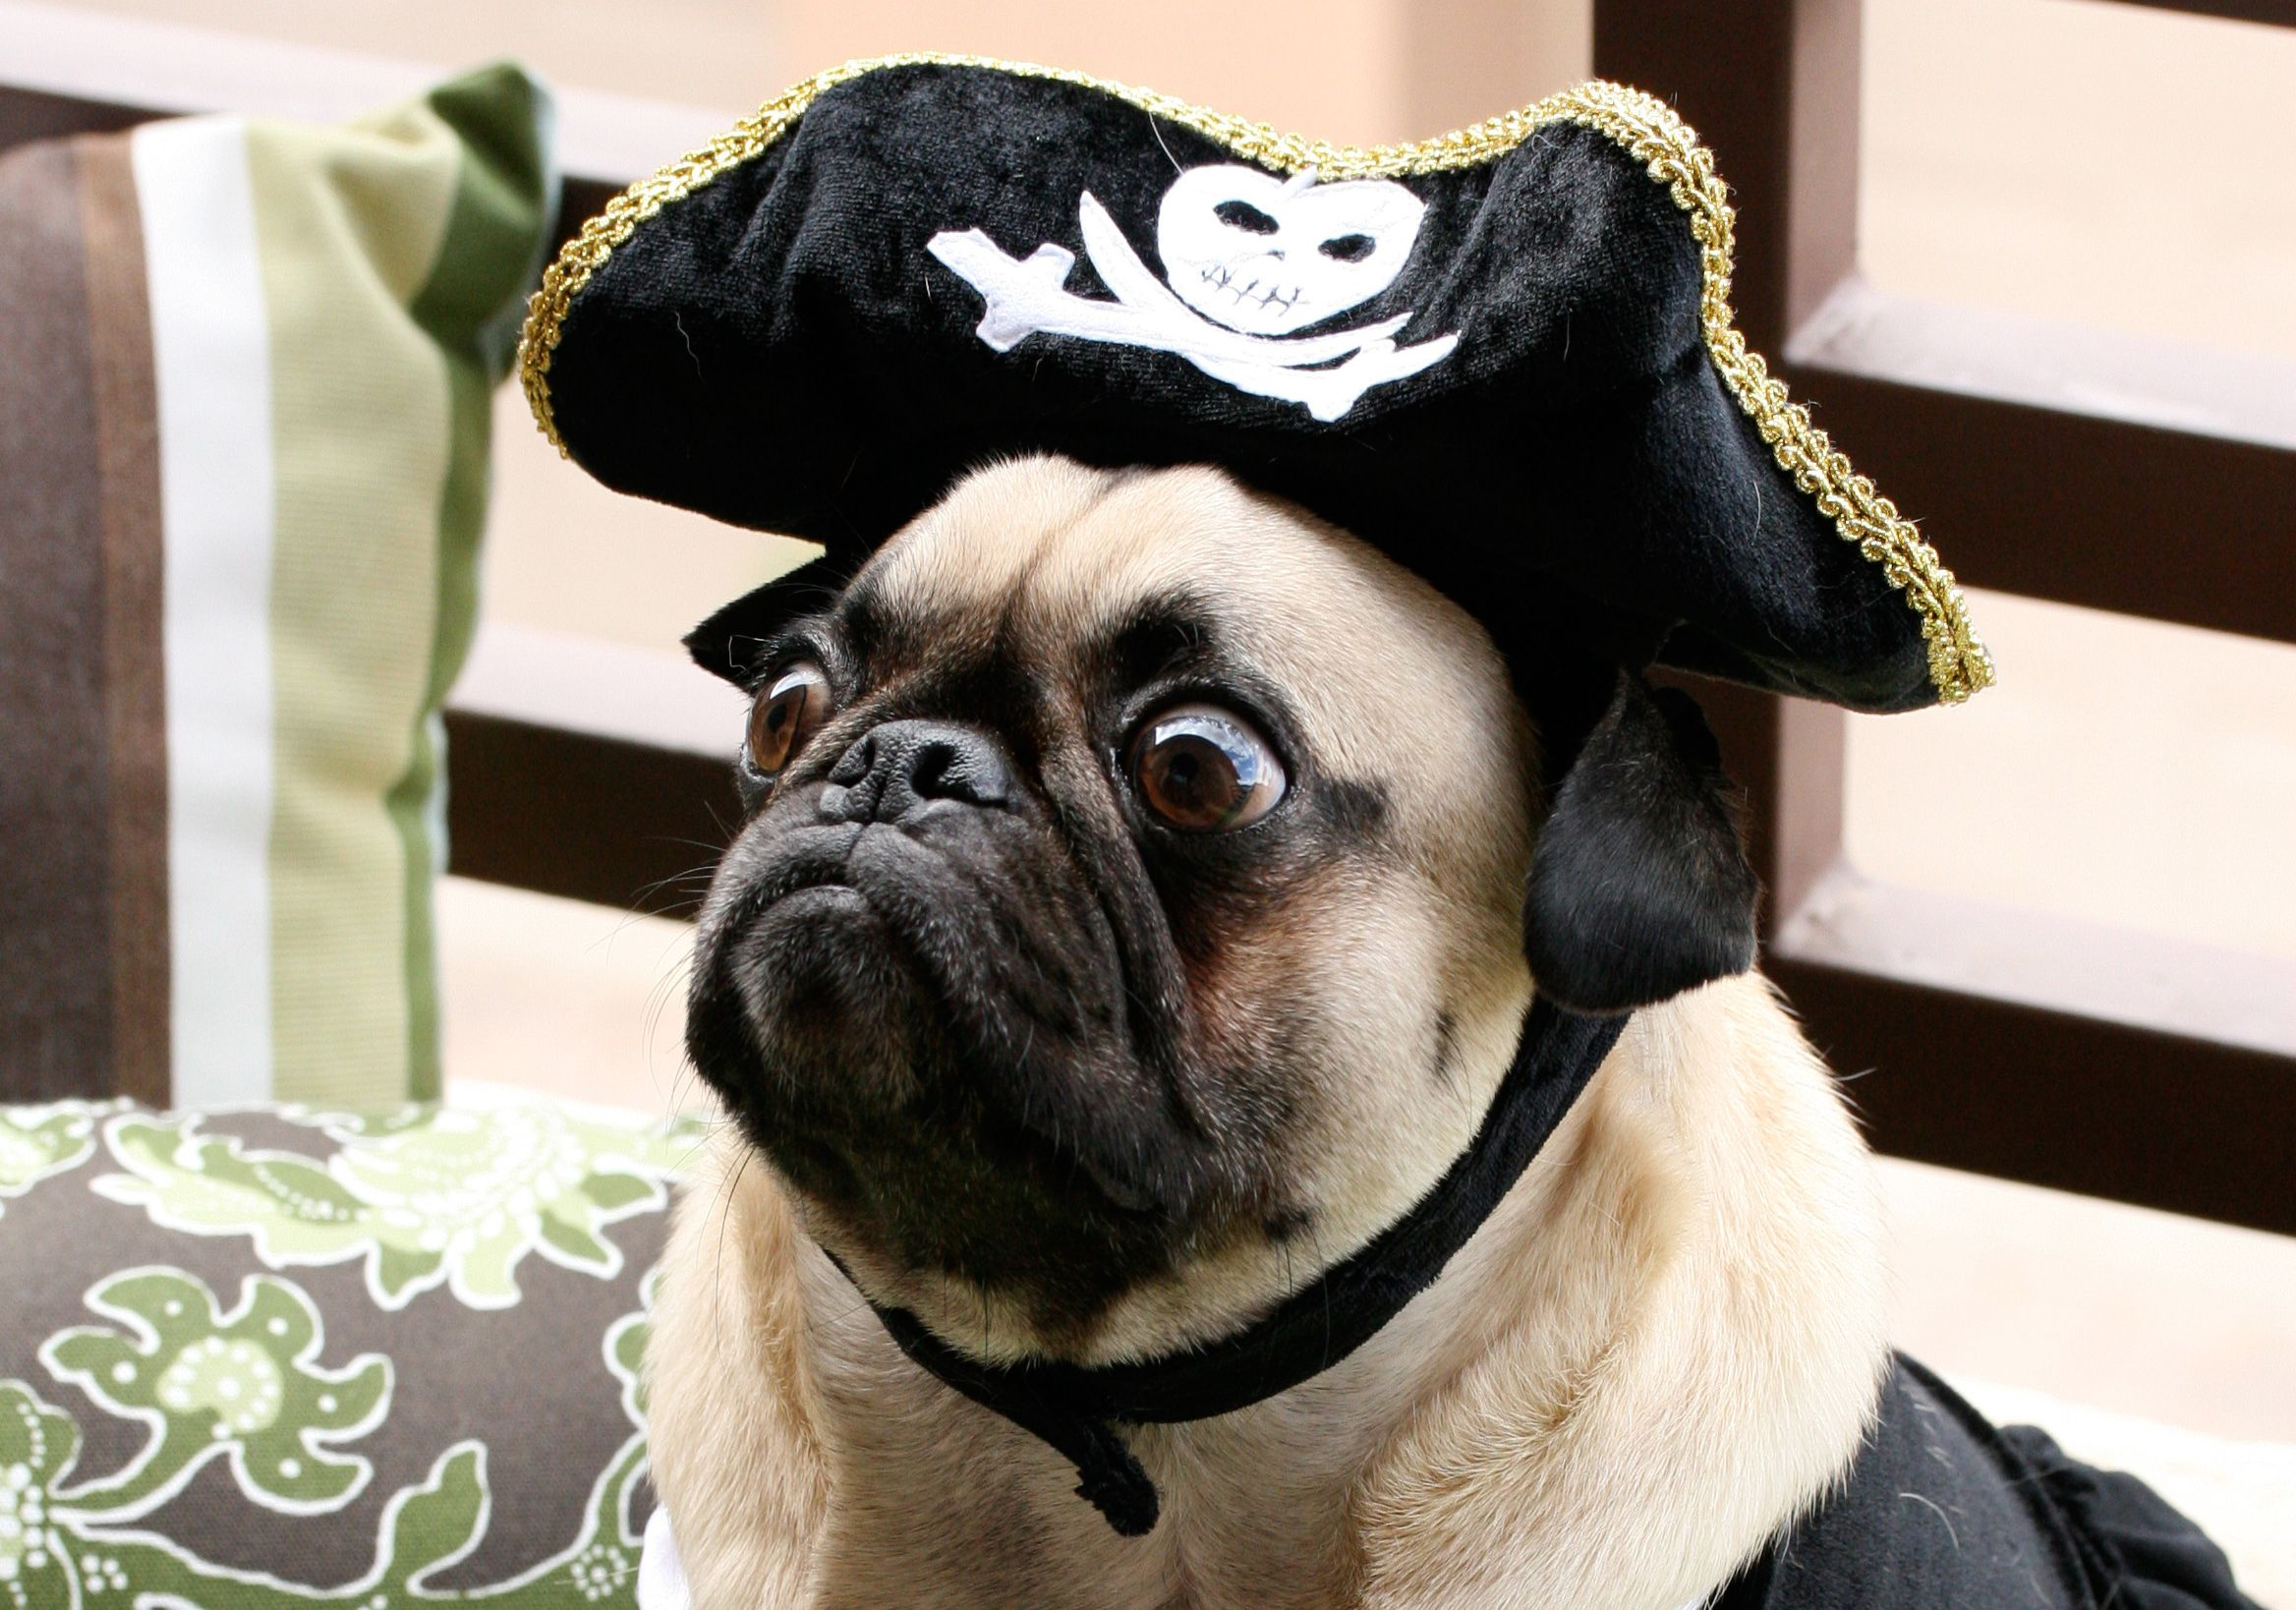 Pin von Dahlia Jane auf Pugs Being Pirates | Pinterest